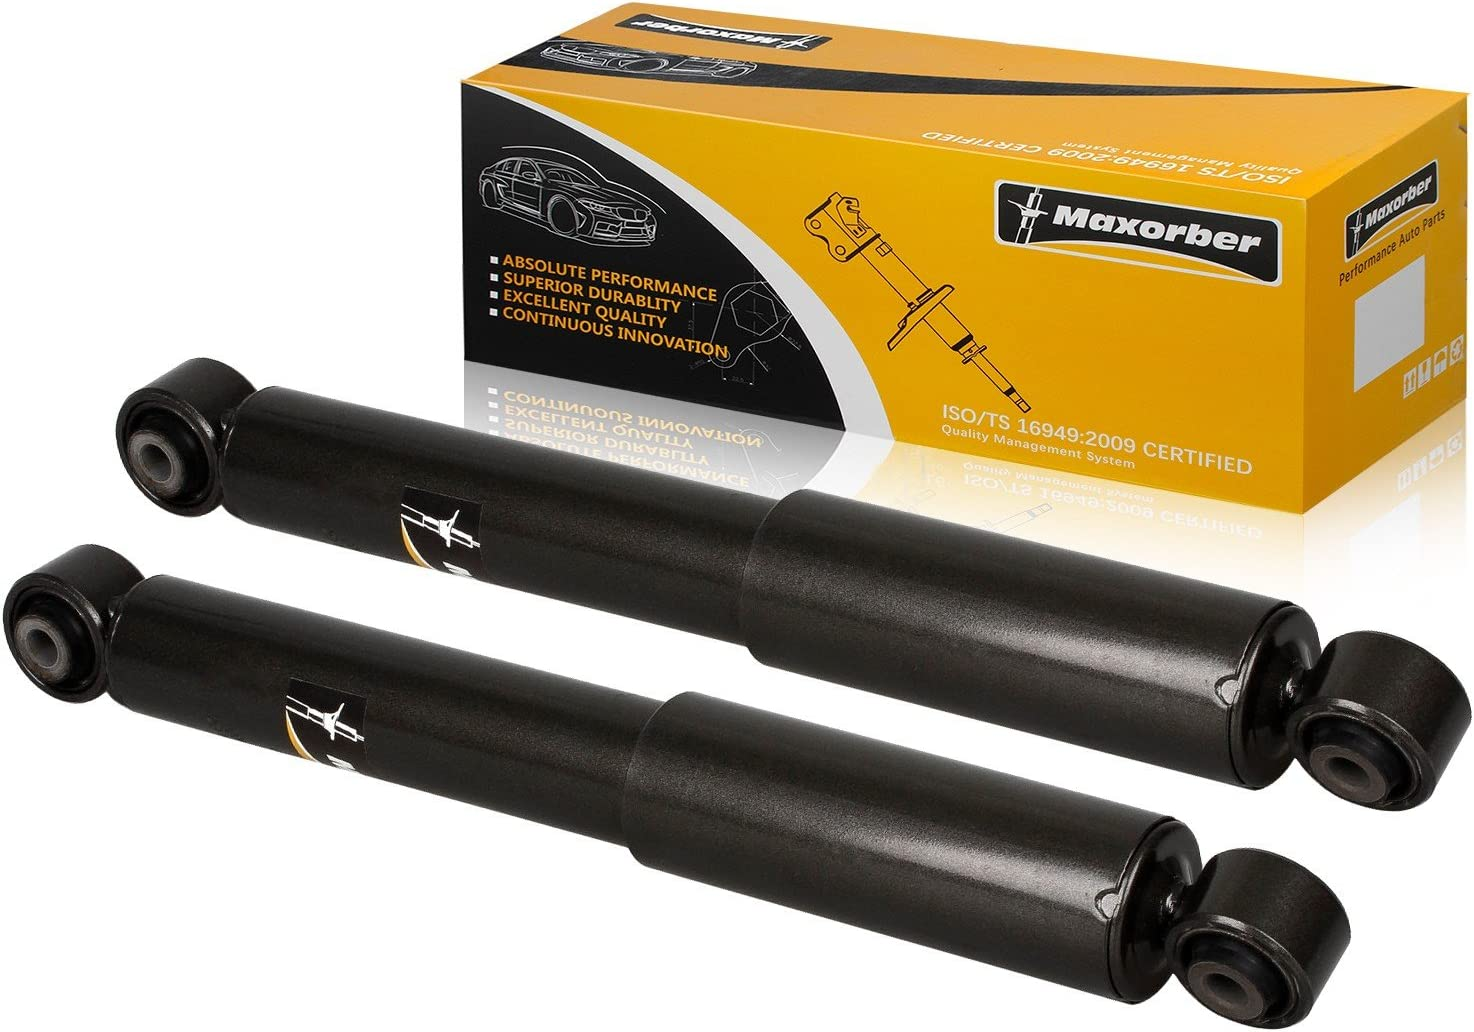 LSAILON 2 pcs Rear Struts Shocks Absorbers Replacement for 2001 ...